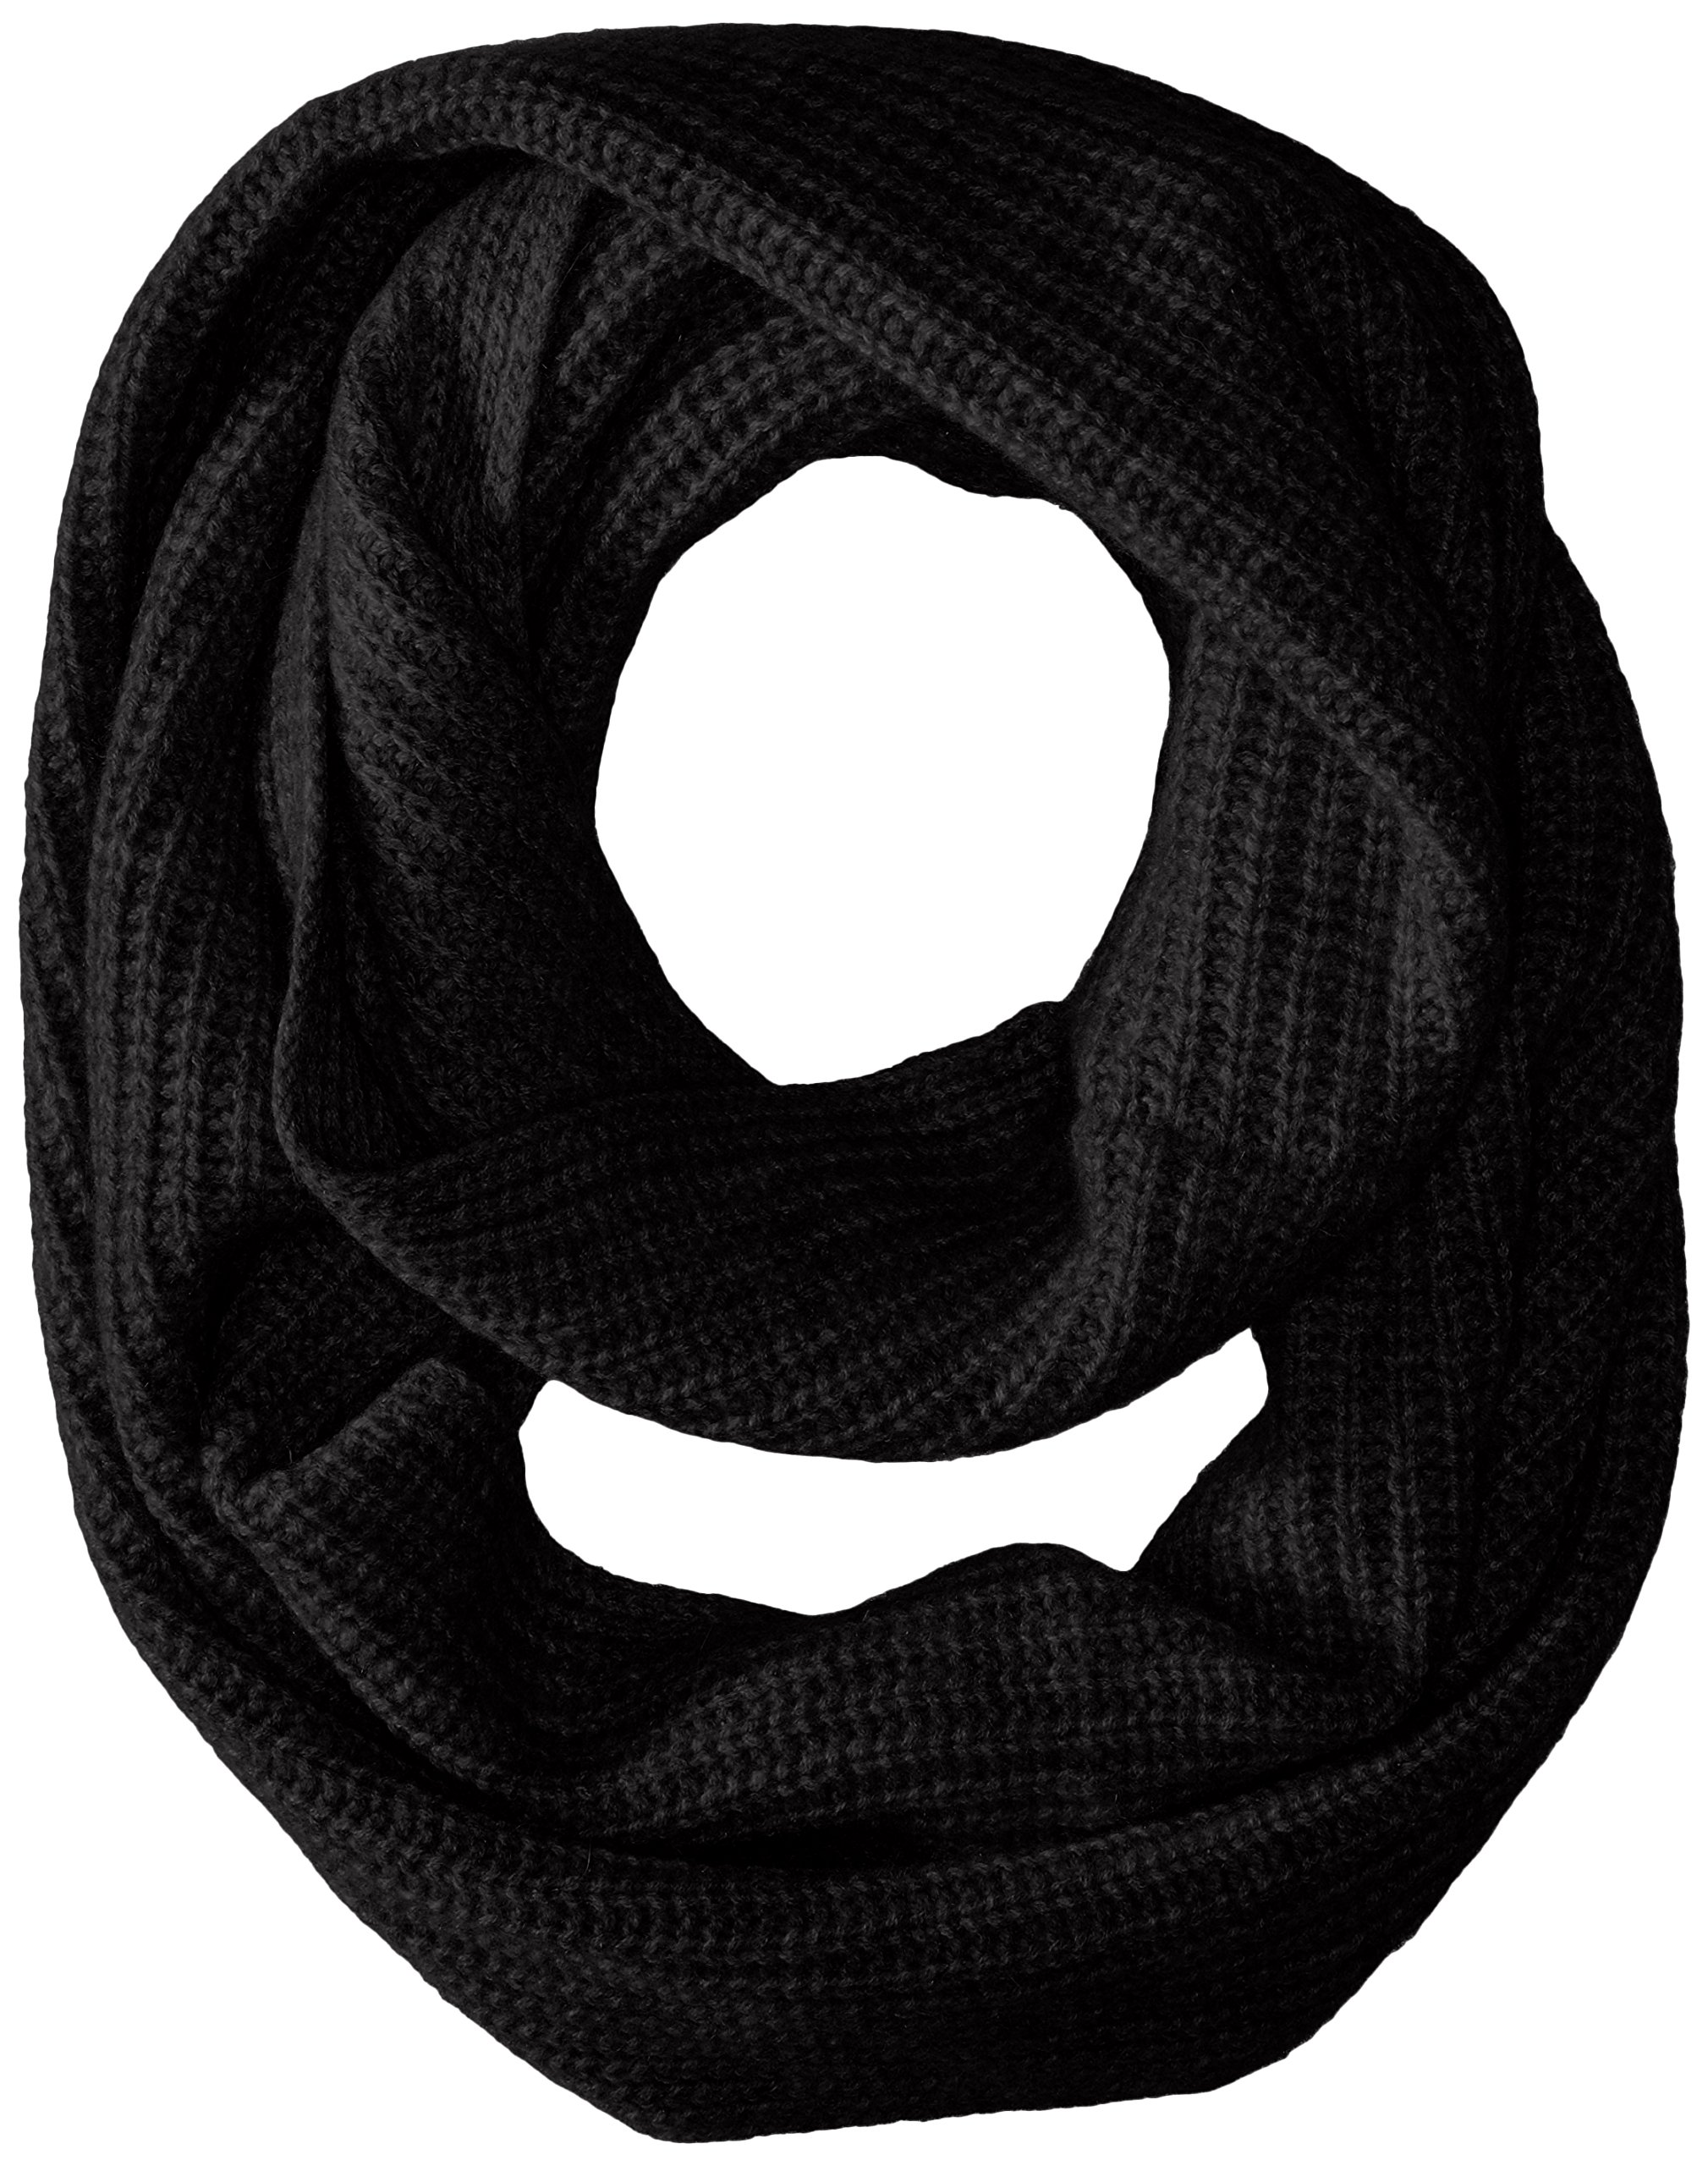 Sofia Cashmere Women's Ribbed Infinity Scarf, Black, One Size